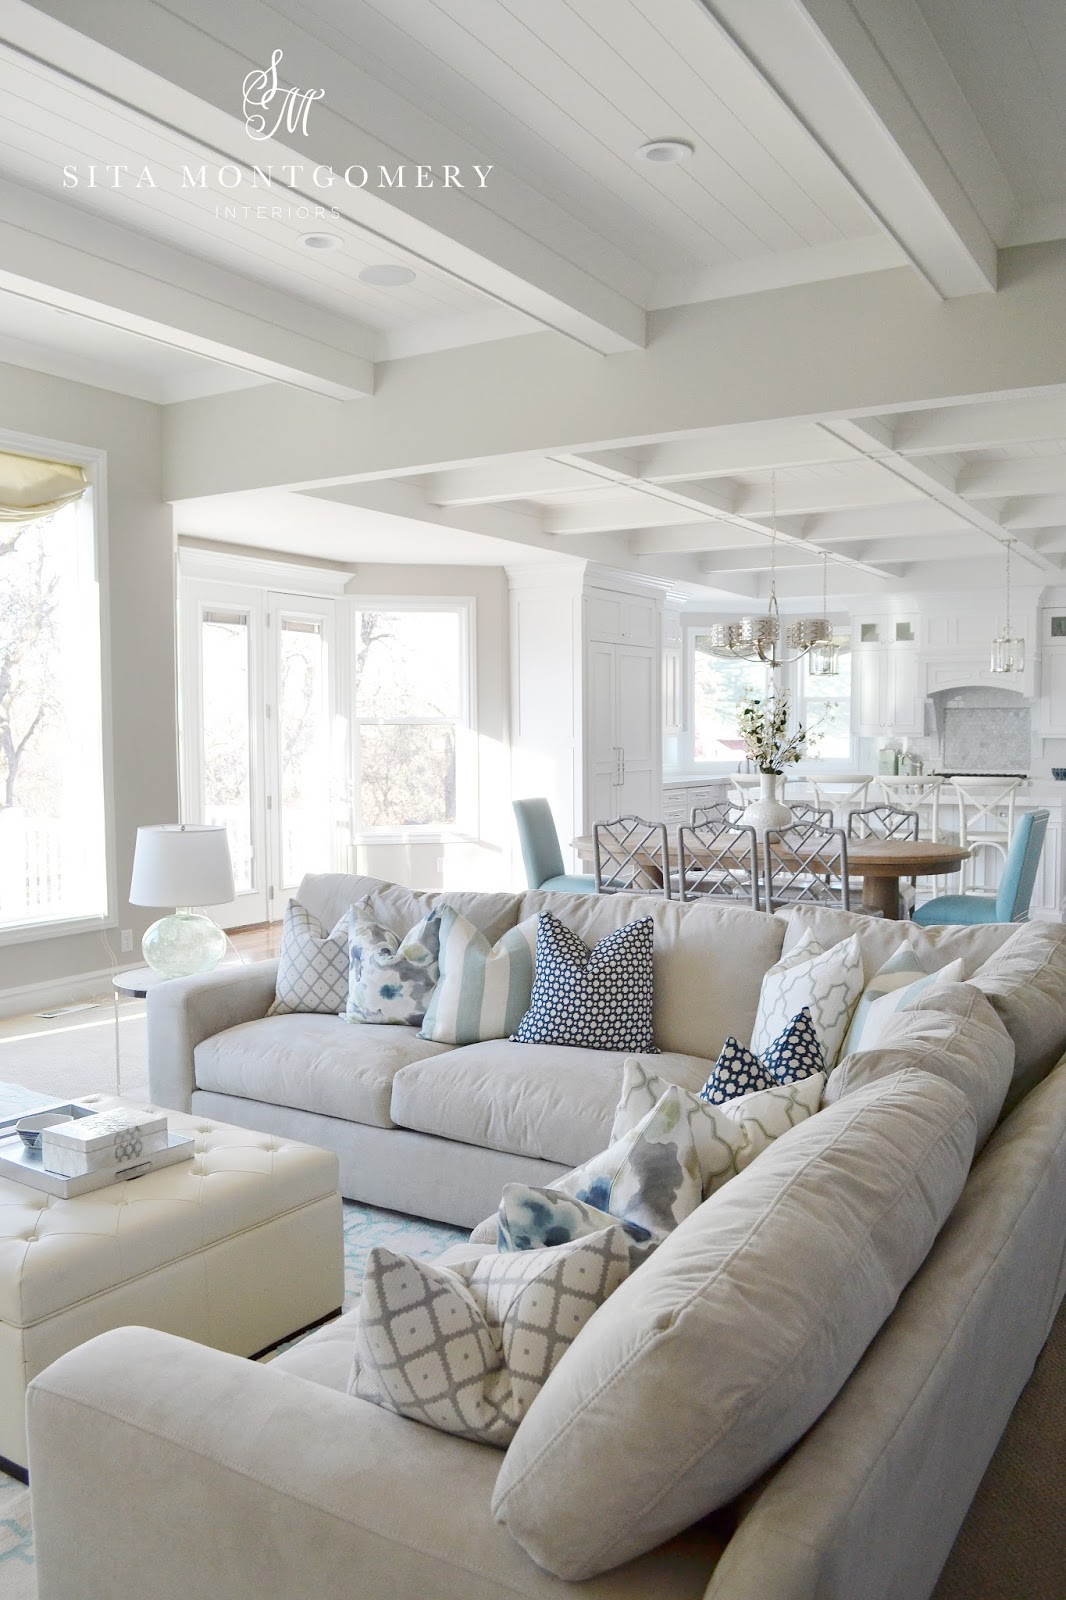 Sita Montgomery Interiors Project Reveal The Rigby